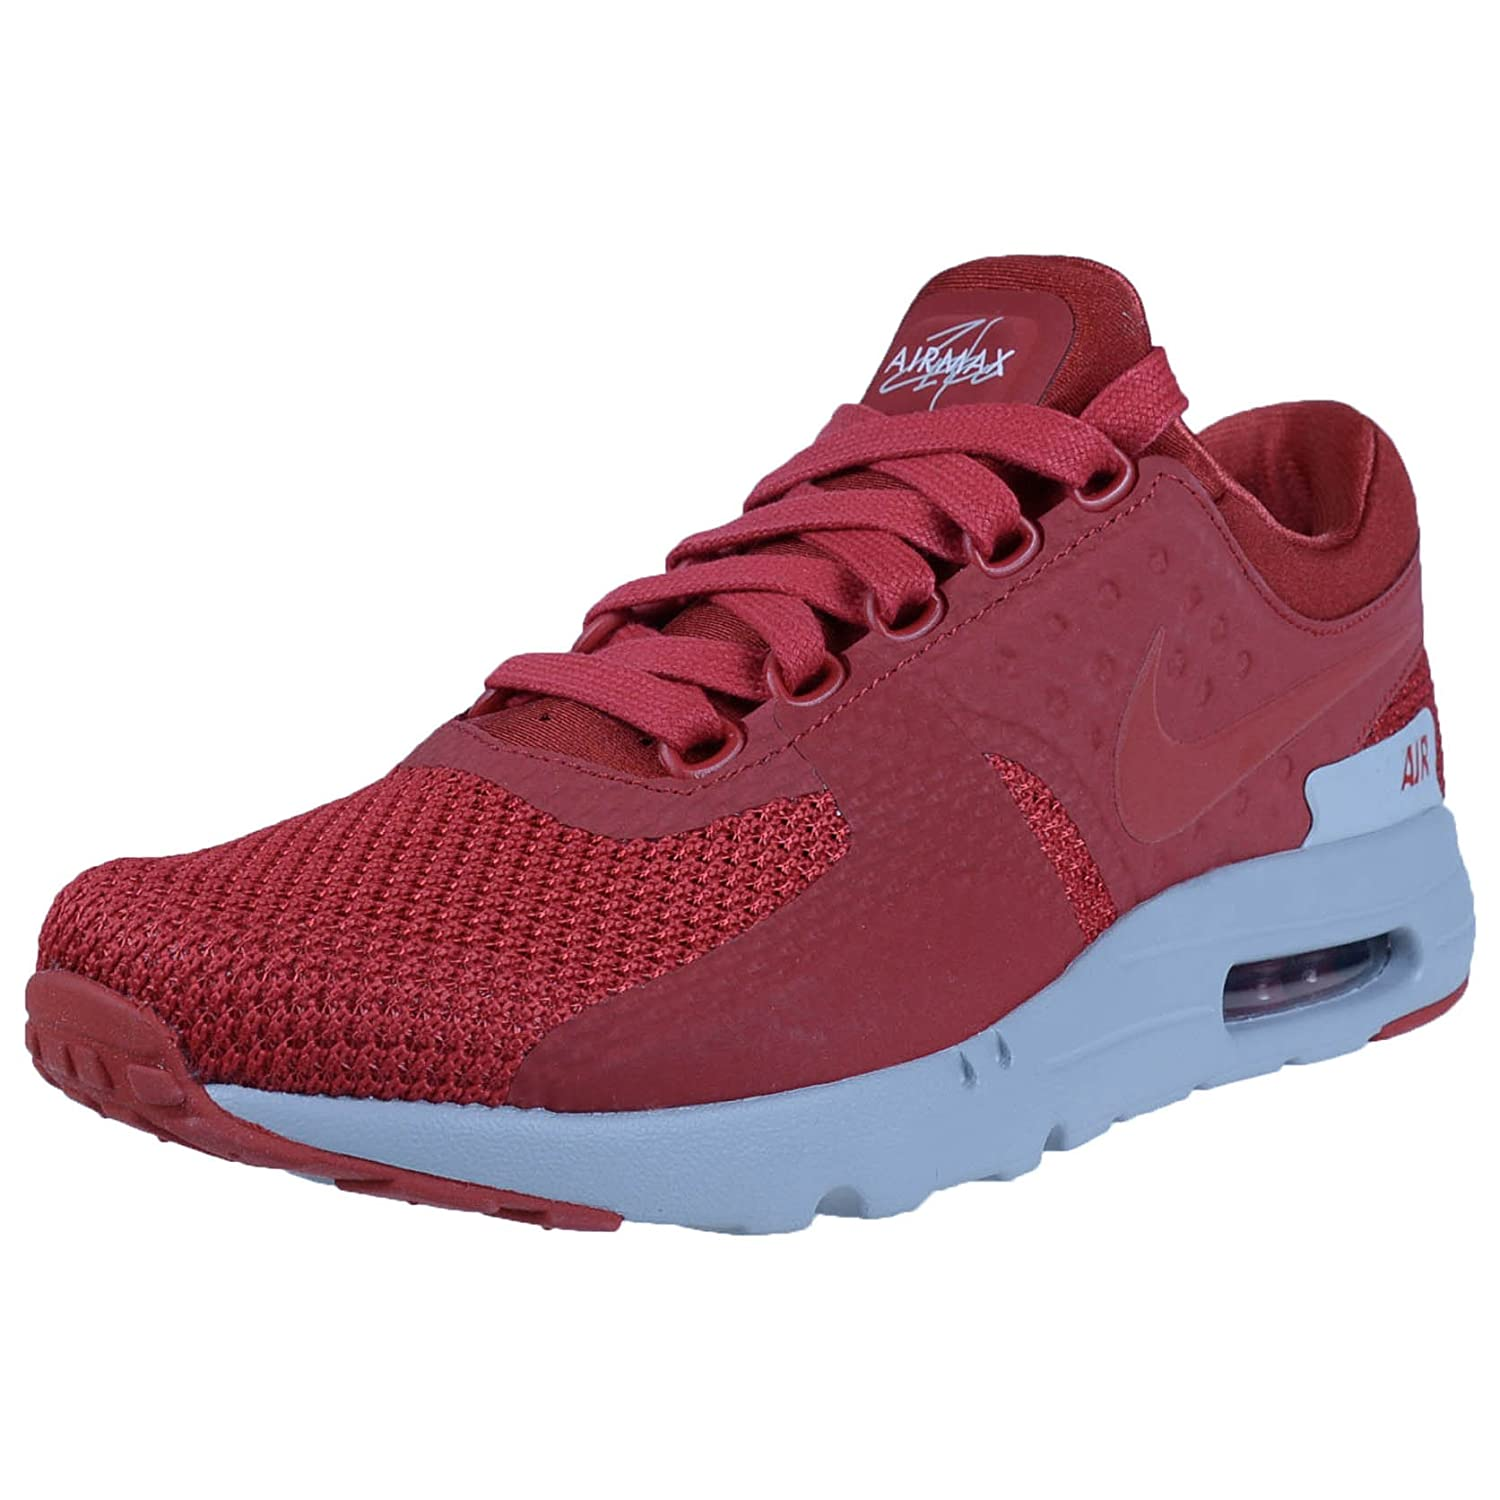 Nike Air Max Zero Premium Gym Red Gym Red Wolf Grey